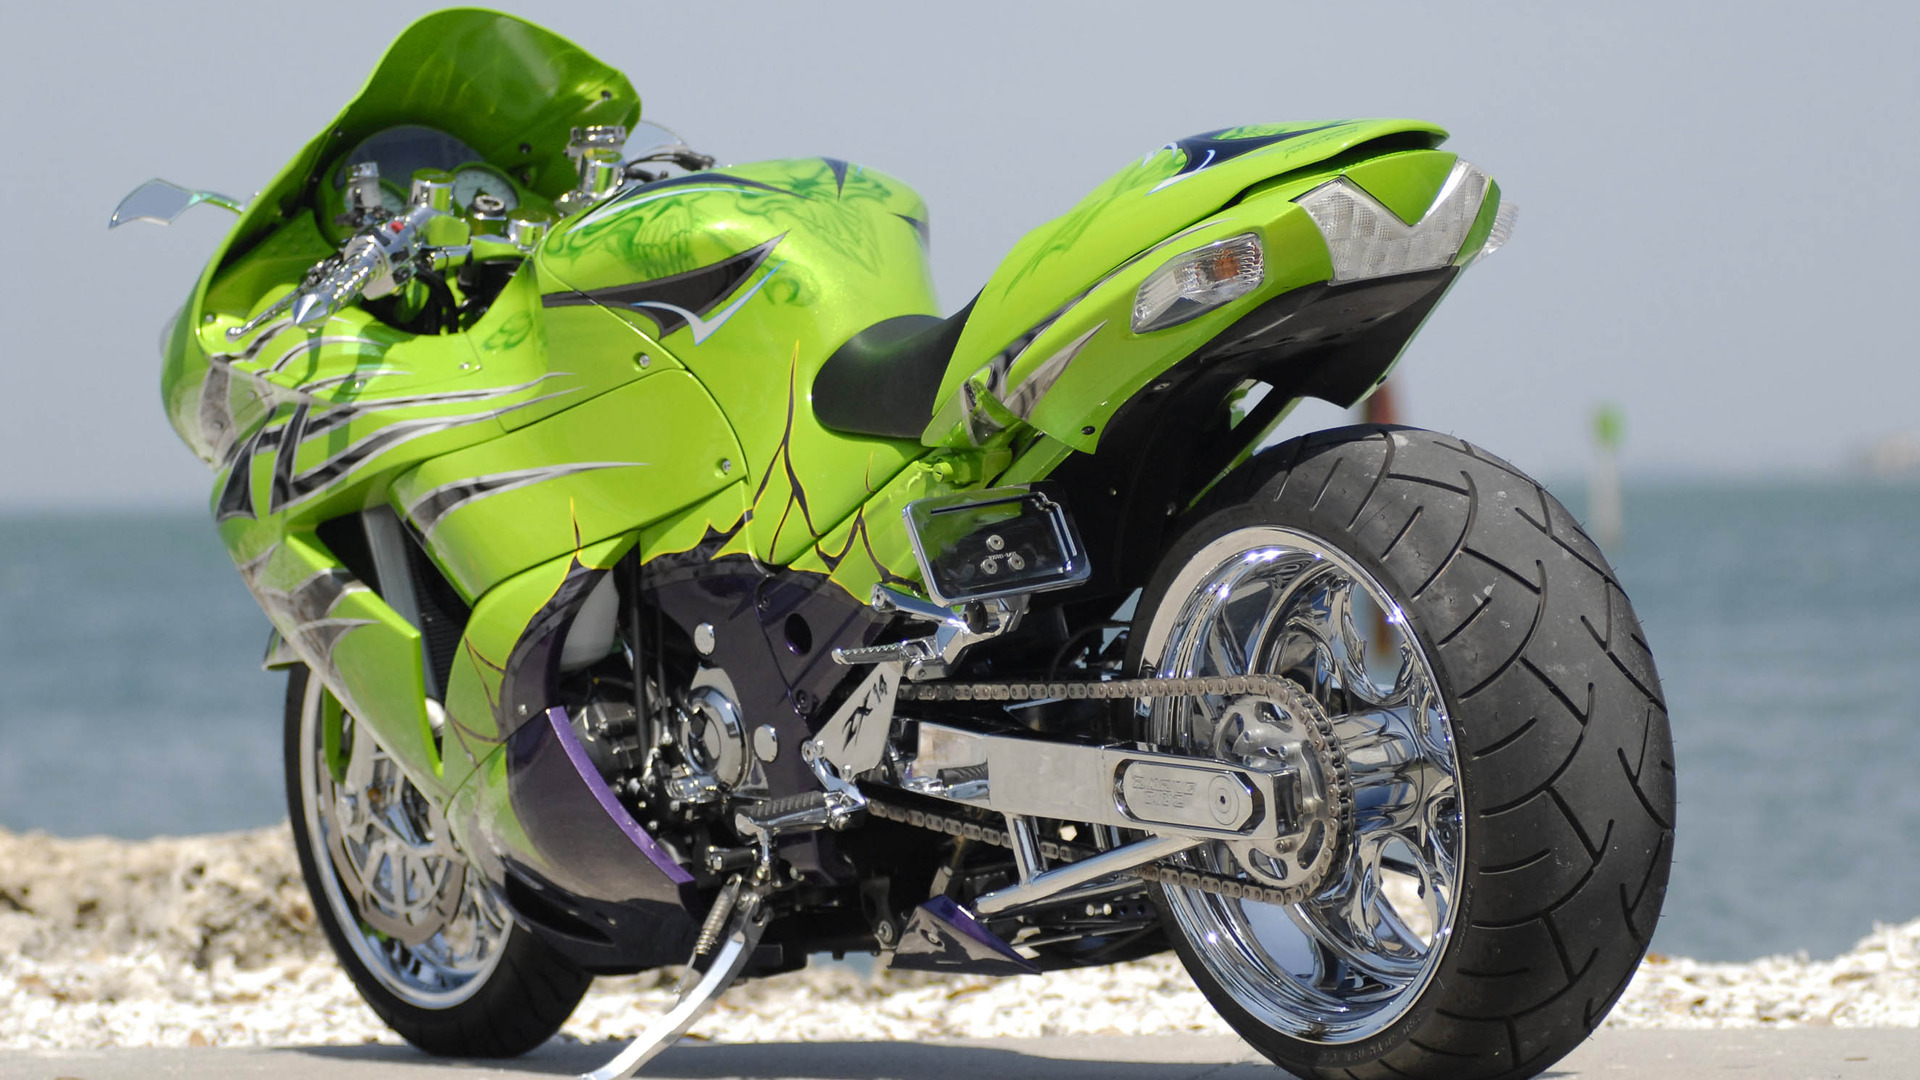 Awesome Super Bikes 1920X1080 Pixels Full HD Wallpapers Collection 1920x1080